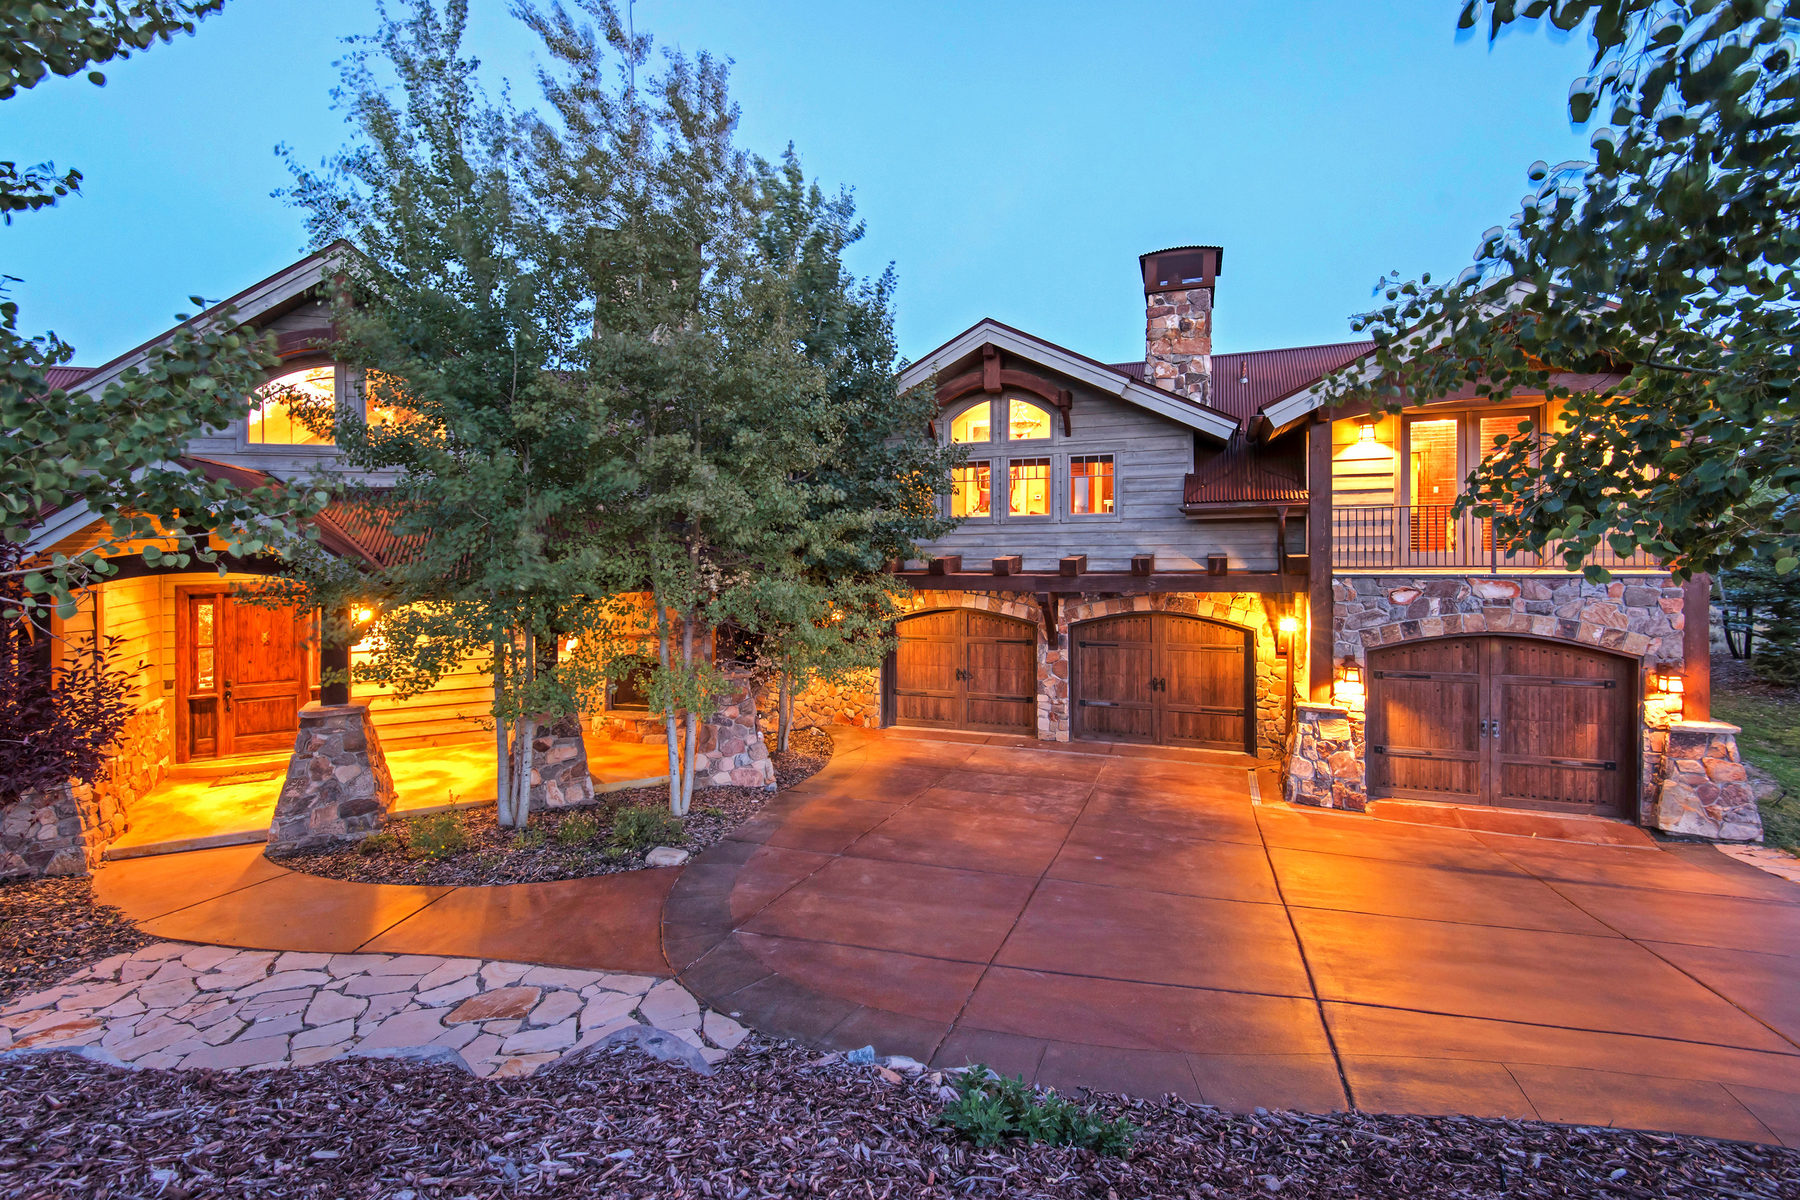 Single Family Home for Sale at Traditional Elegance In Promontory's Most Exclusive Neighborhood 8450 N Sunrise Lp Park City, Utah, 84098 United States